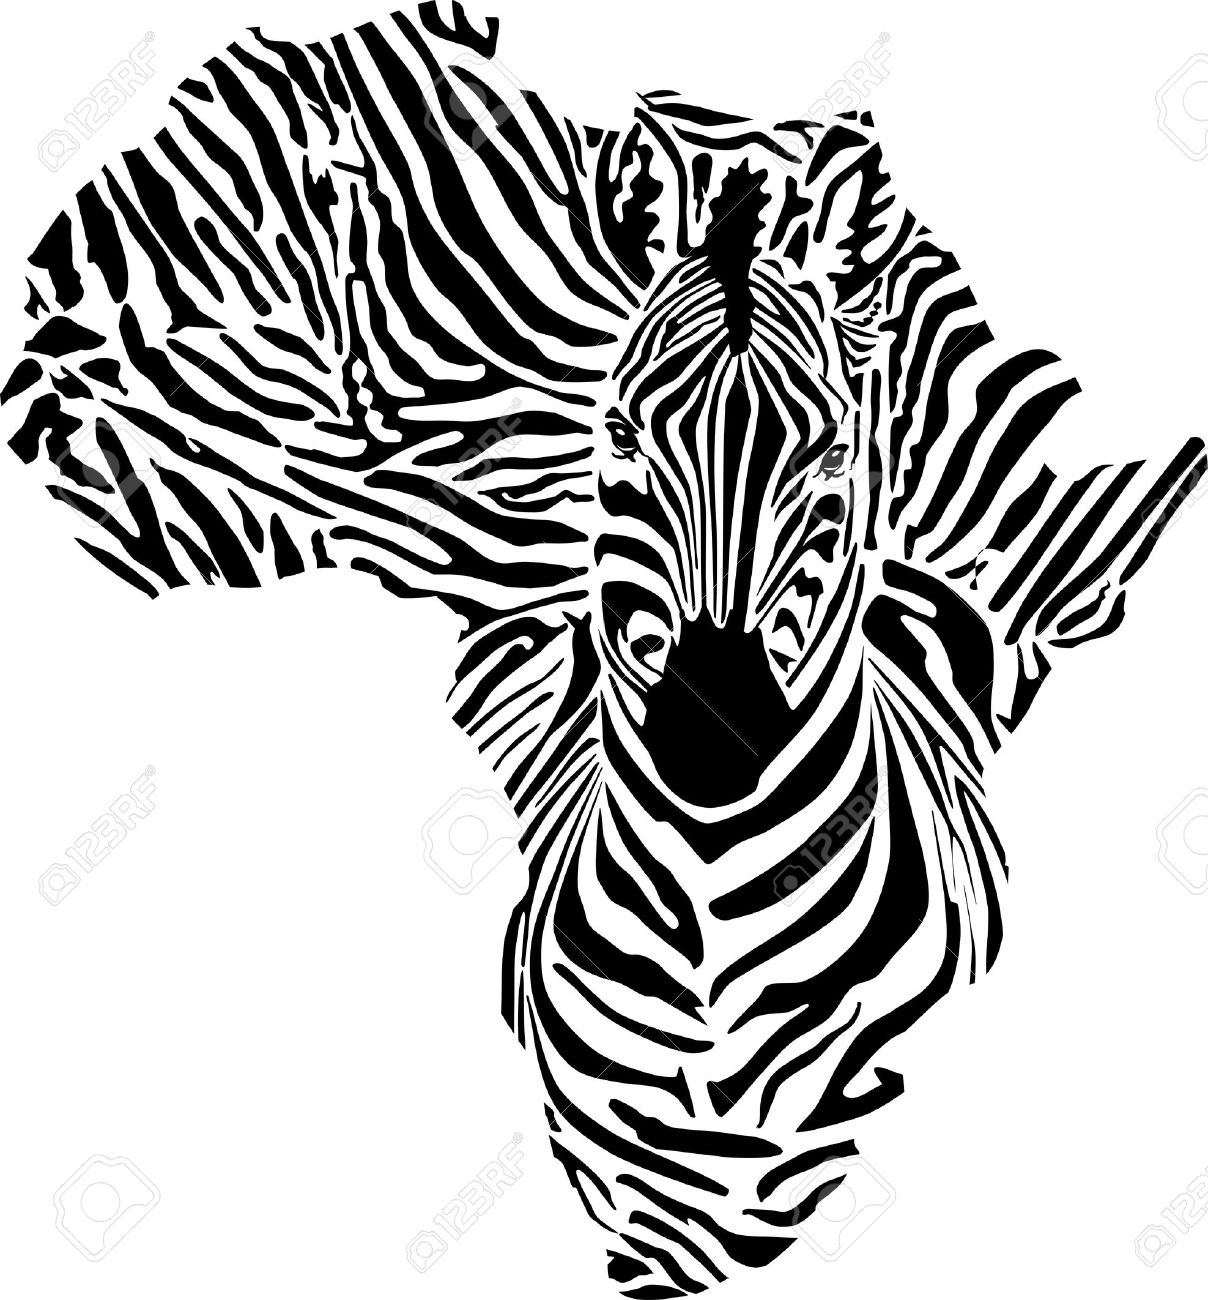 Black continent in a zebras camouflage.